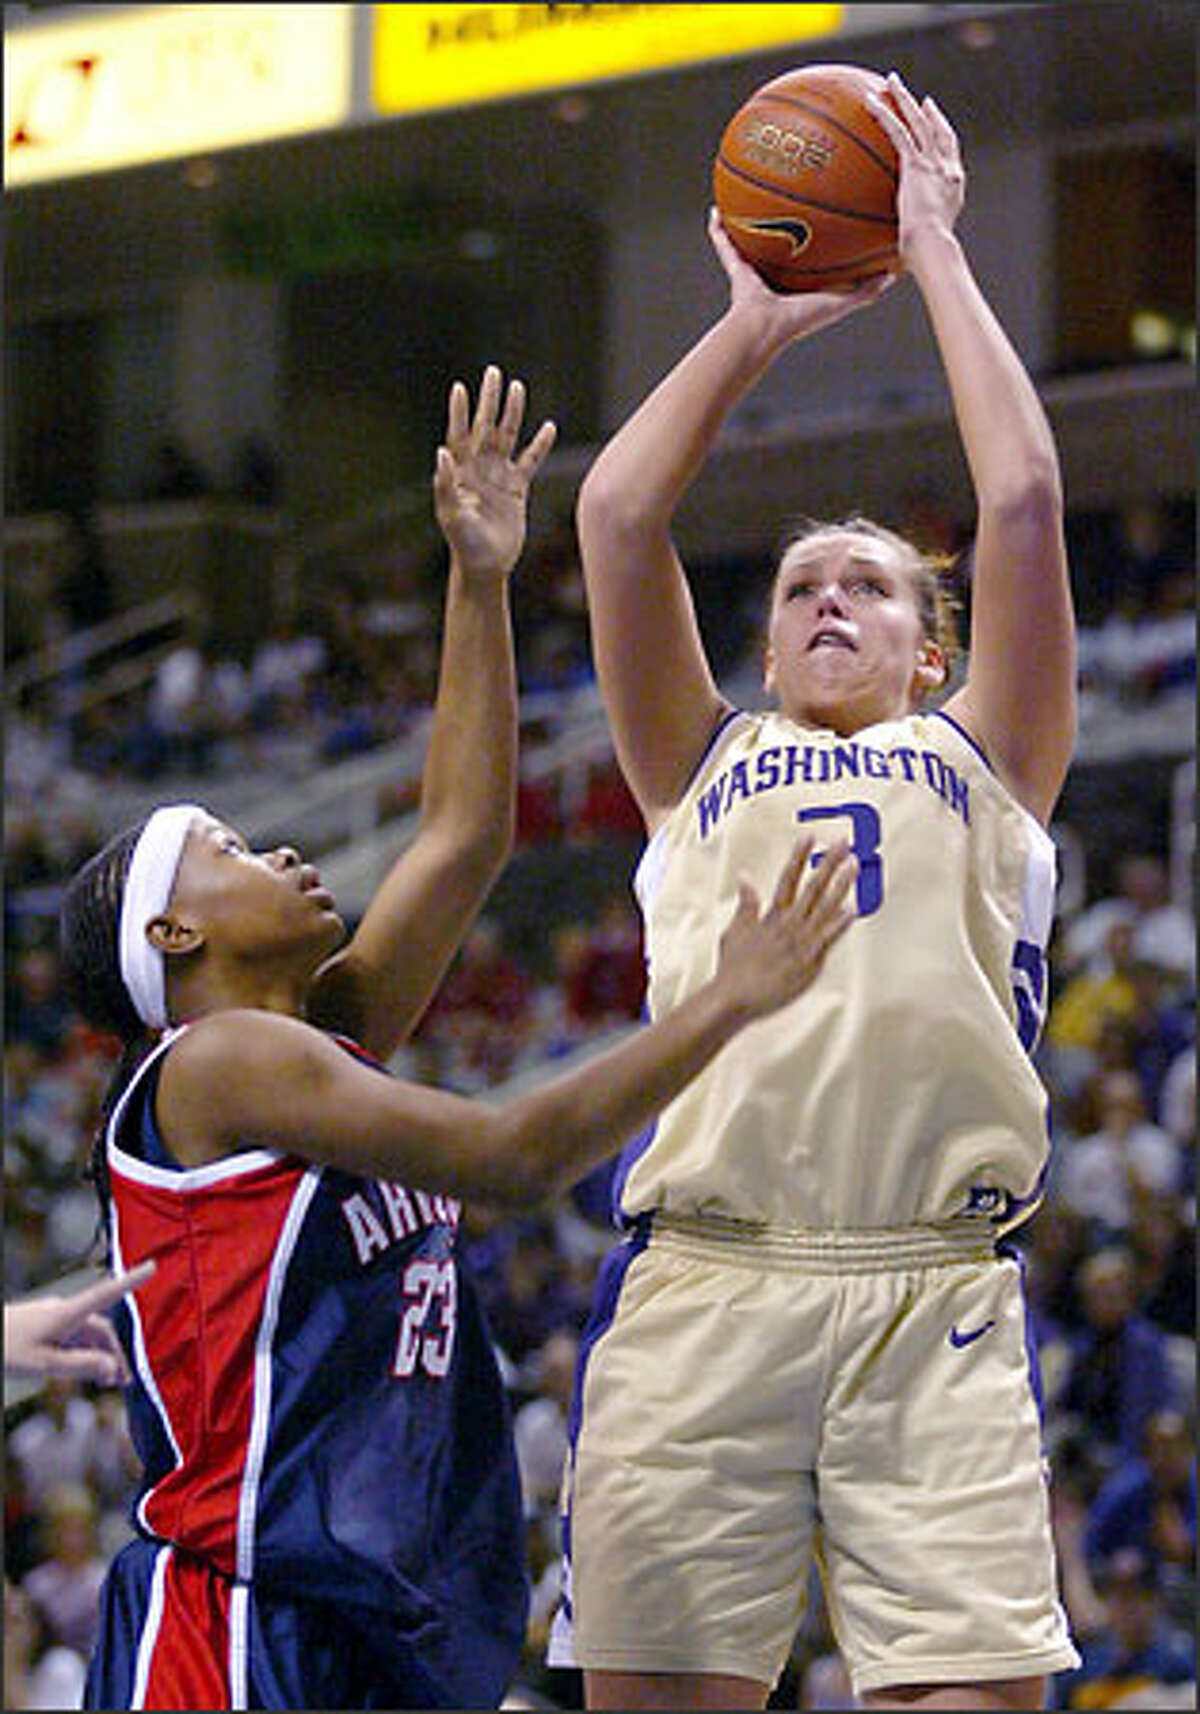 Washington's Andrea Lalum, right, shoots over Arizona's Natalie Jones, left, in the first half of the semifinals of the Pacific 10 Conference Championships in San Jose, Calif., Sunday, March 9, 2003.